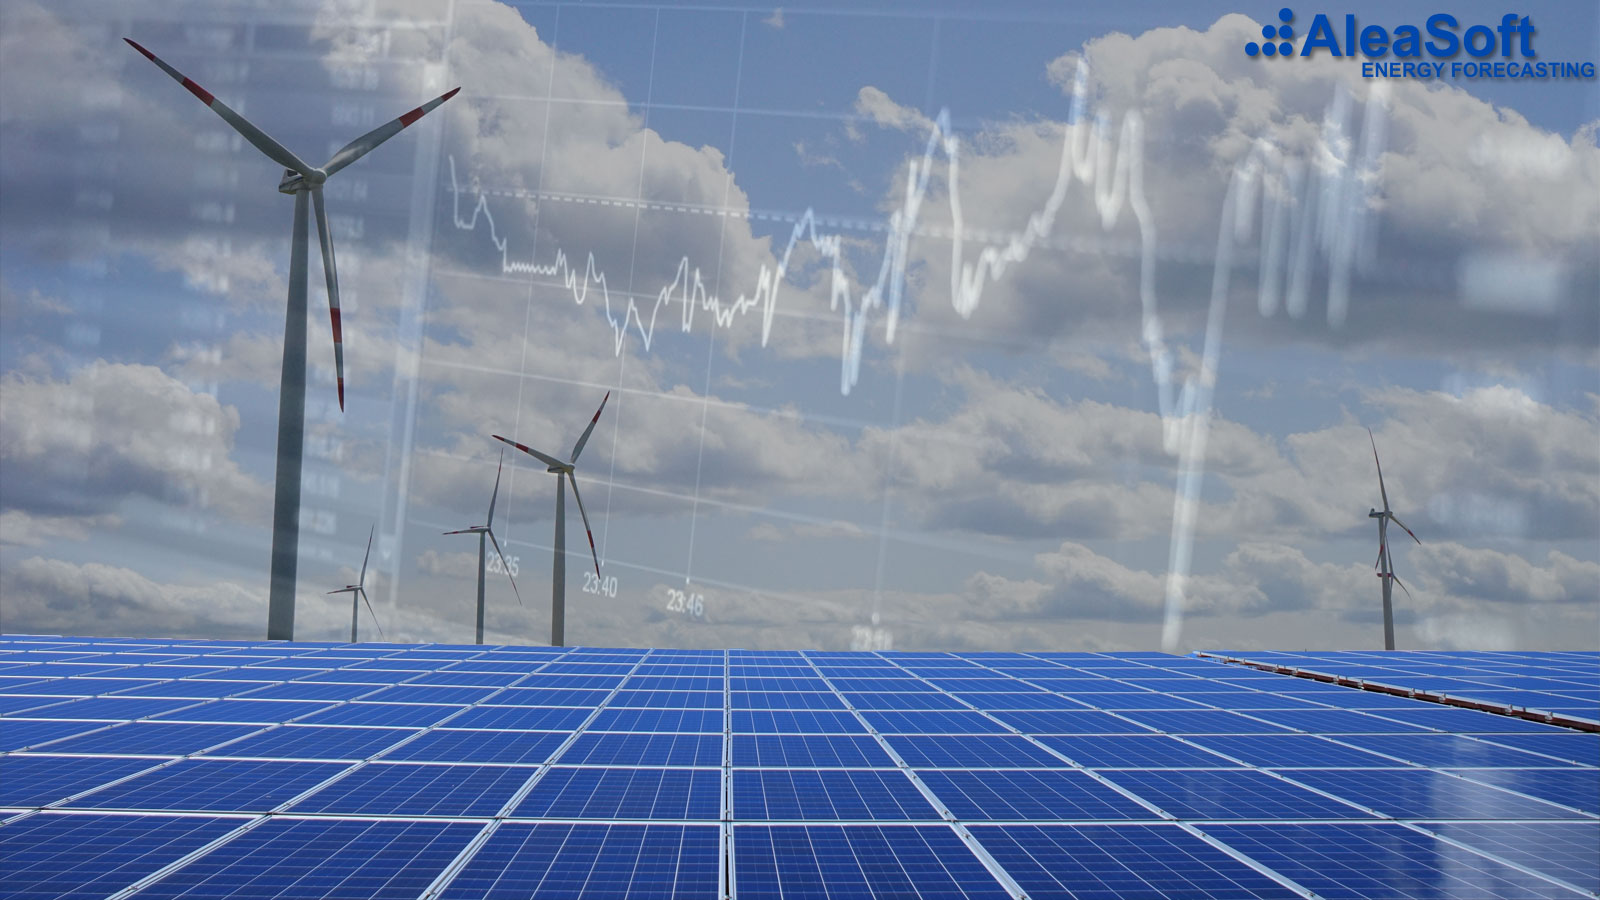 AleaSoft - CO2 gas coal prices PPA electricity markets